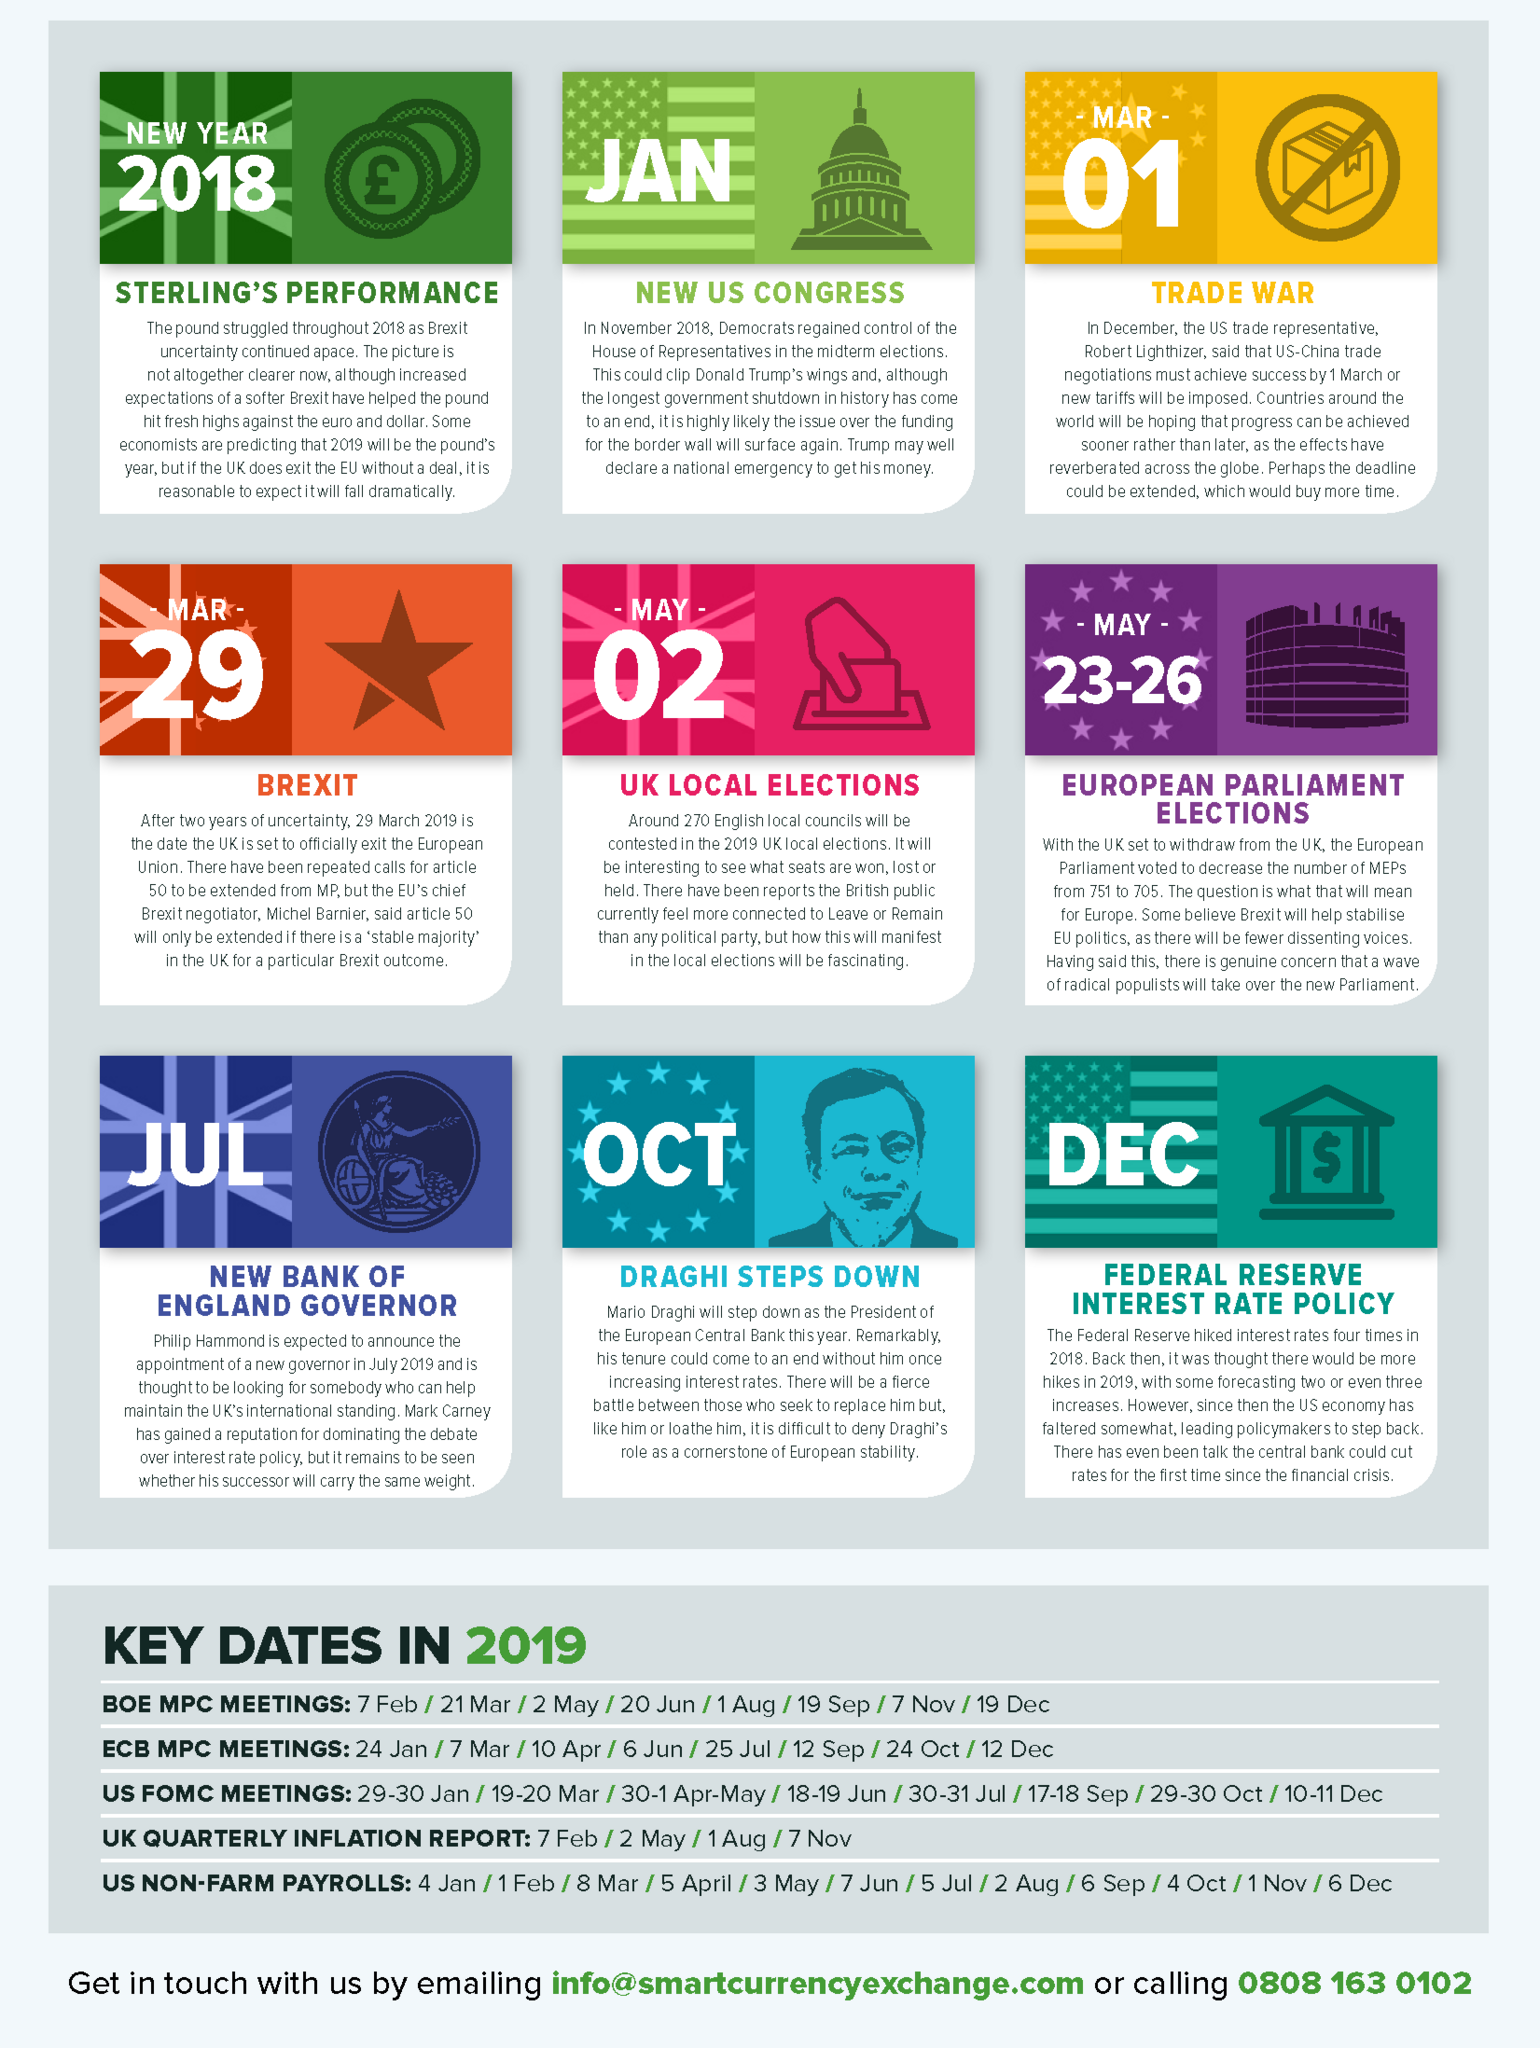 These are the key dates for your diary on the exchange rates in 2019.